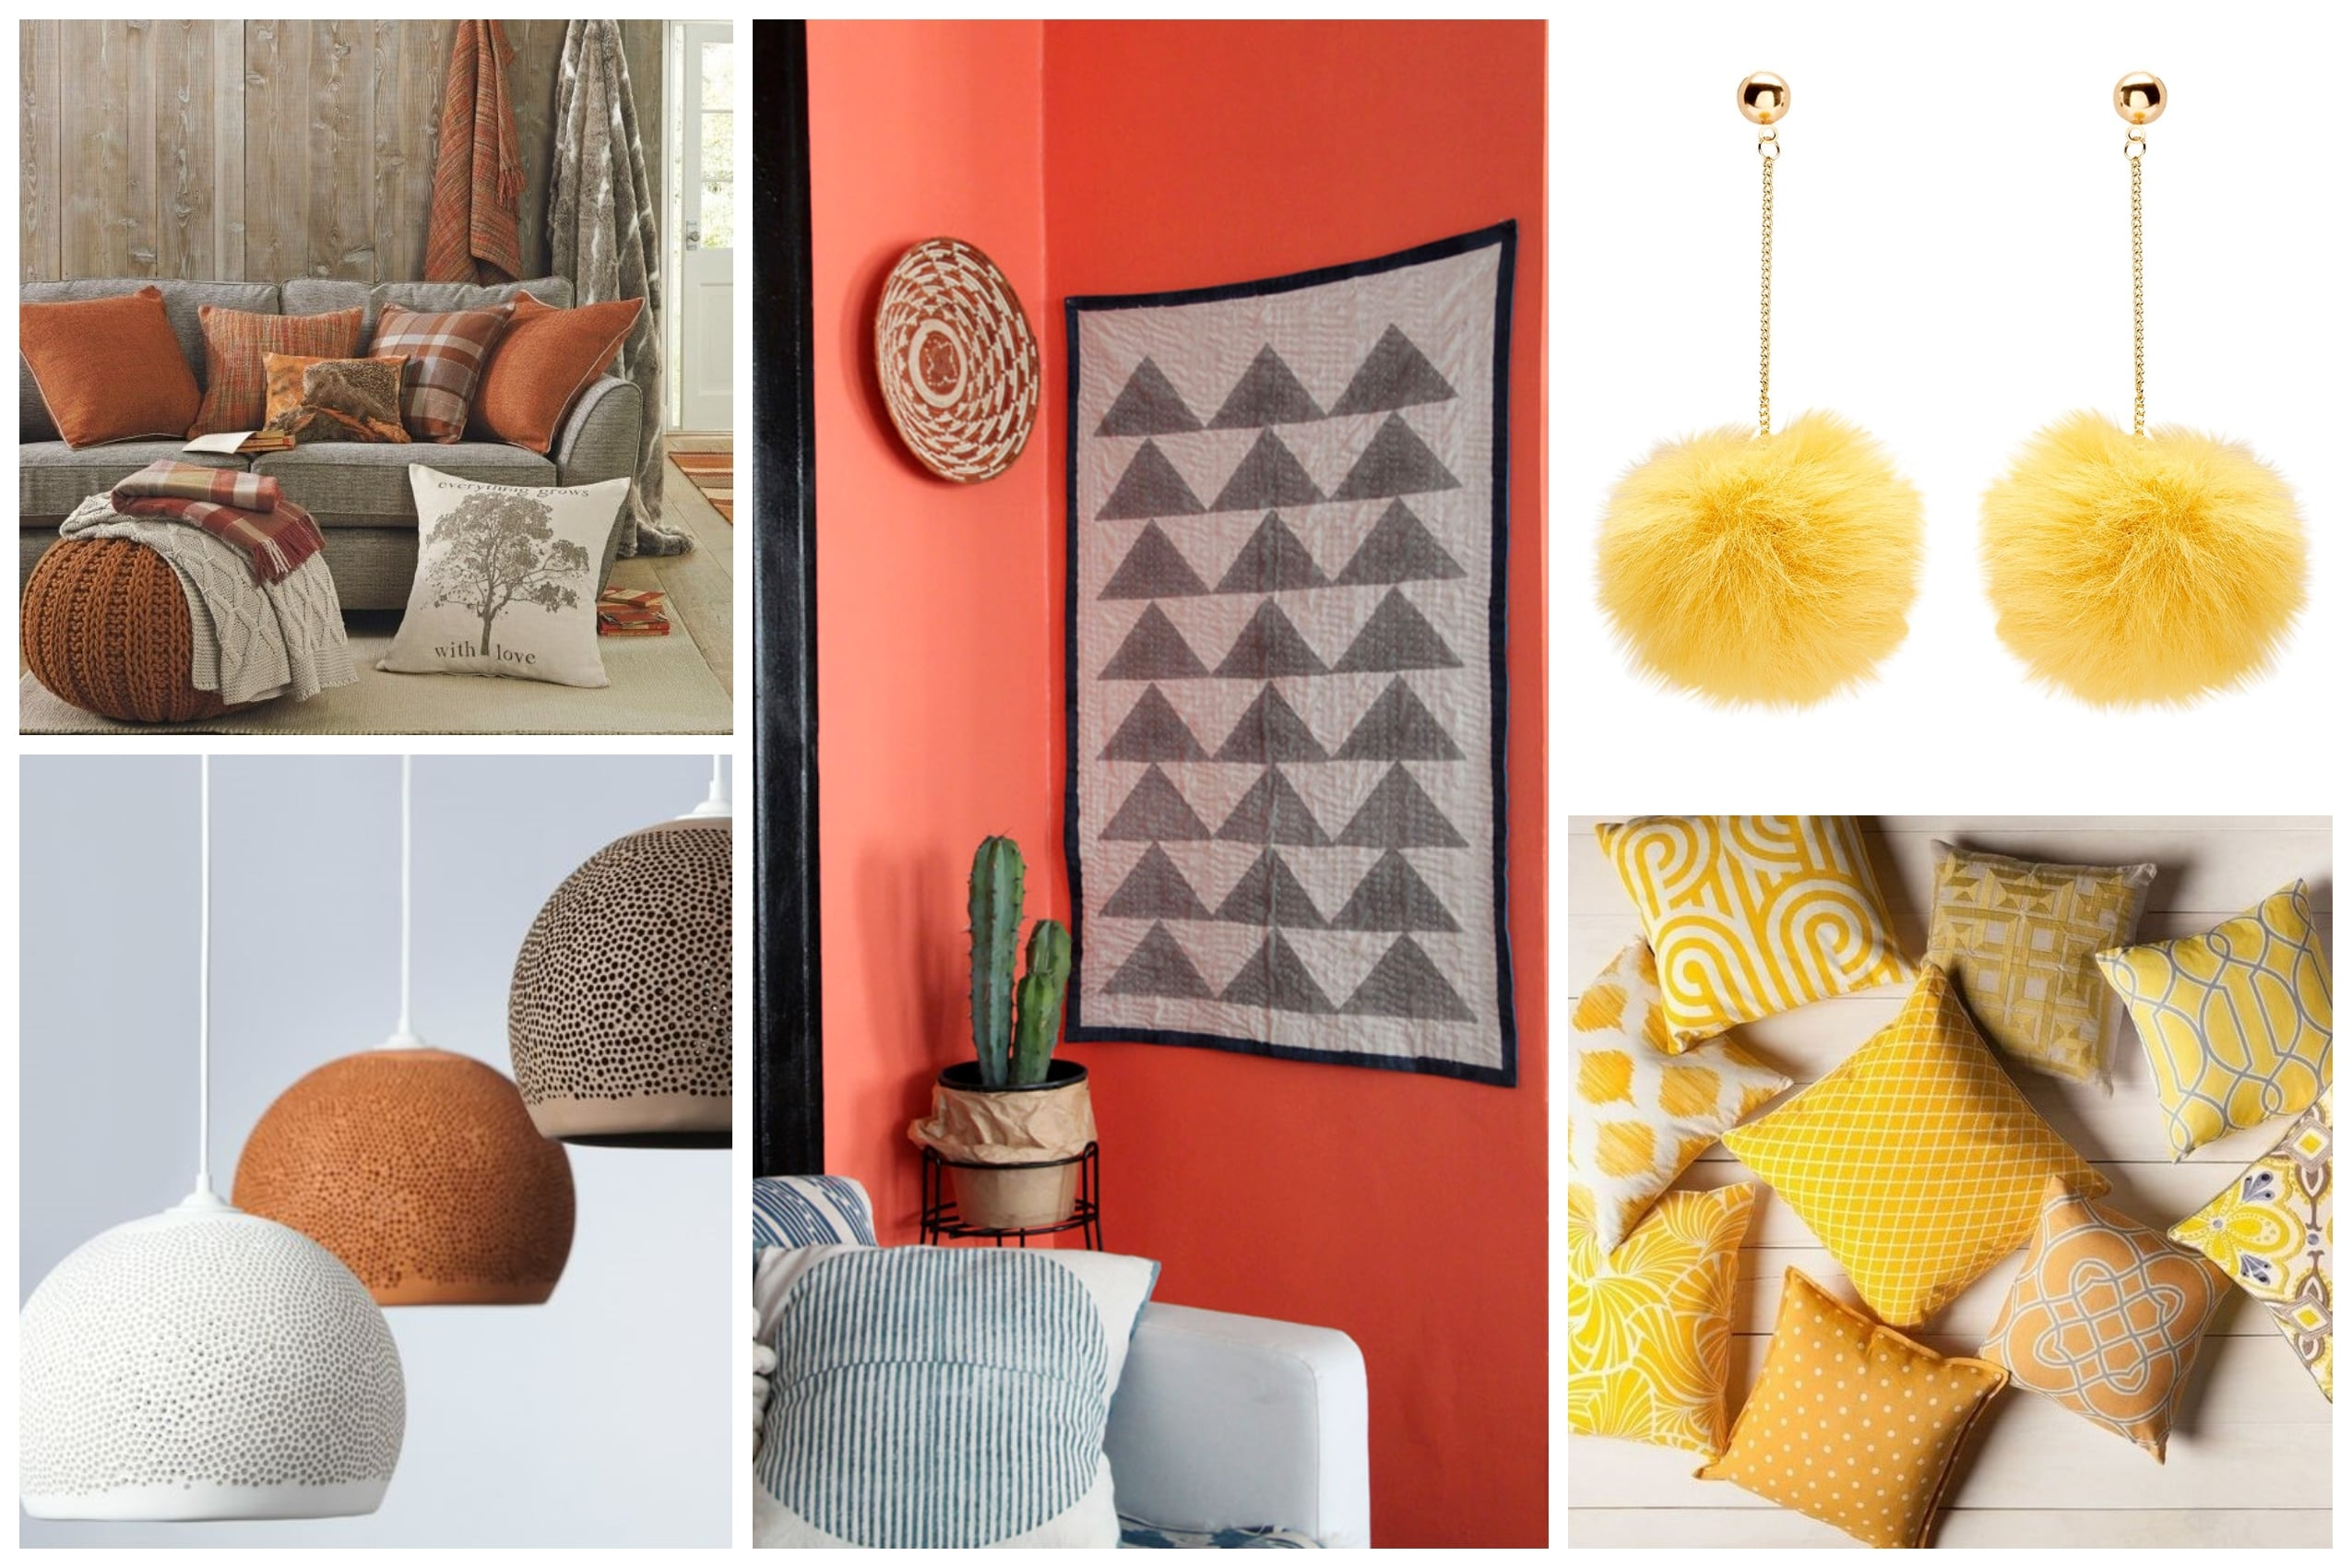 Craft Trends To Look For In 2020.Big Craft Trends For 2019 Ellison